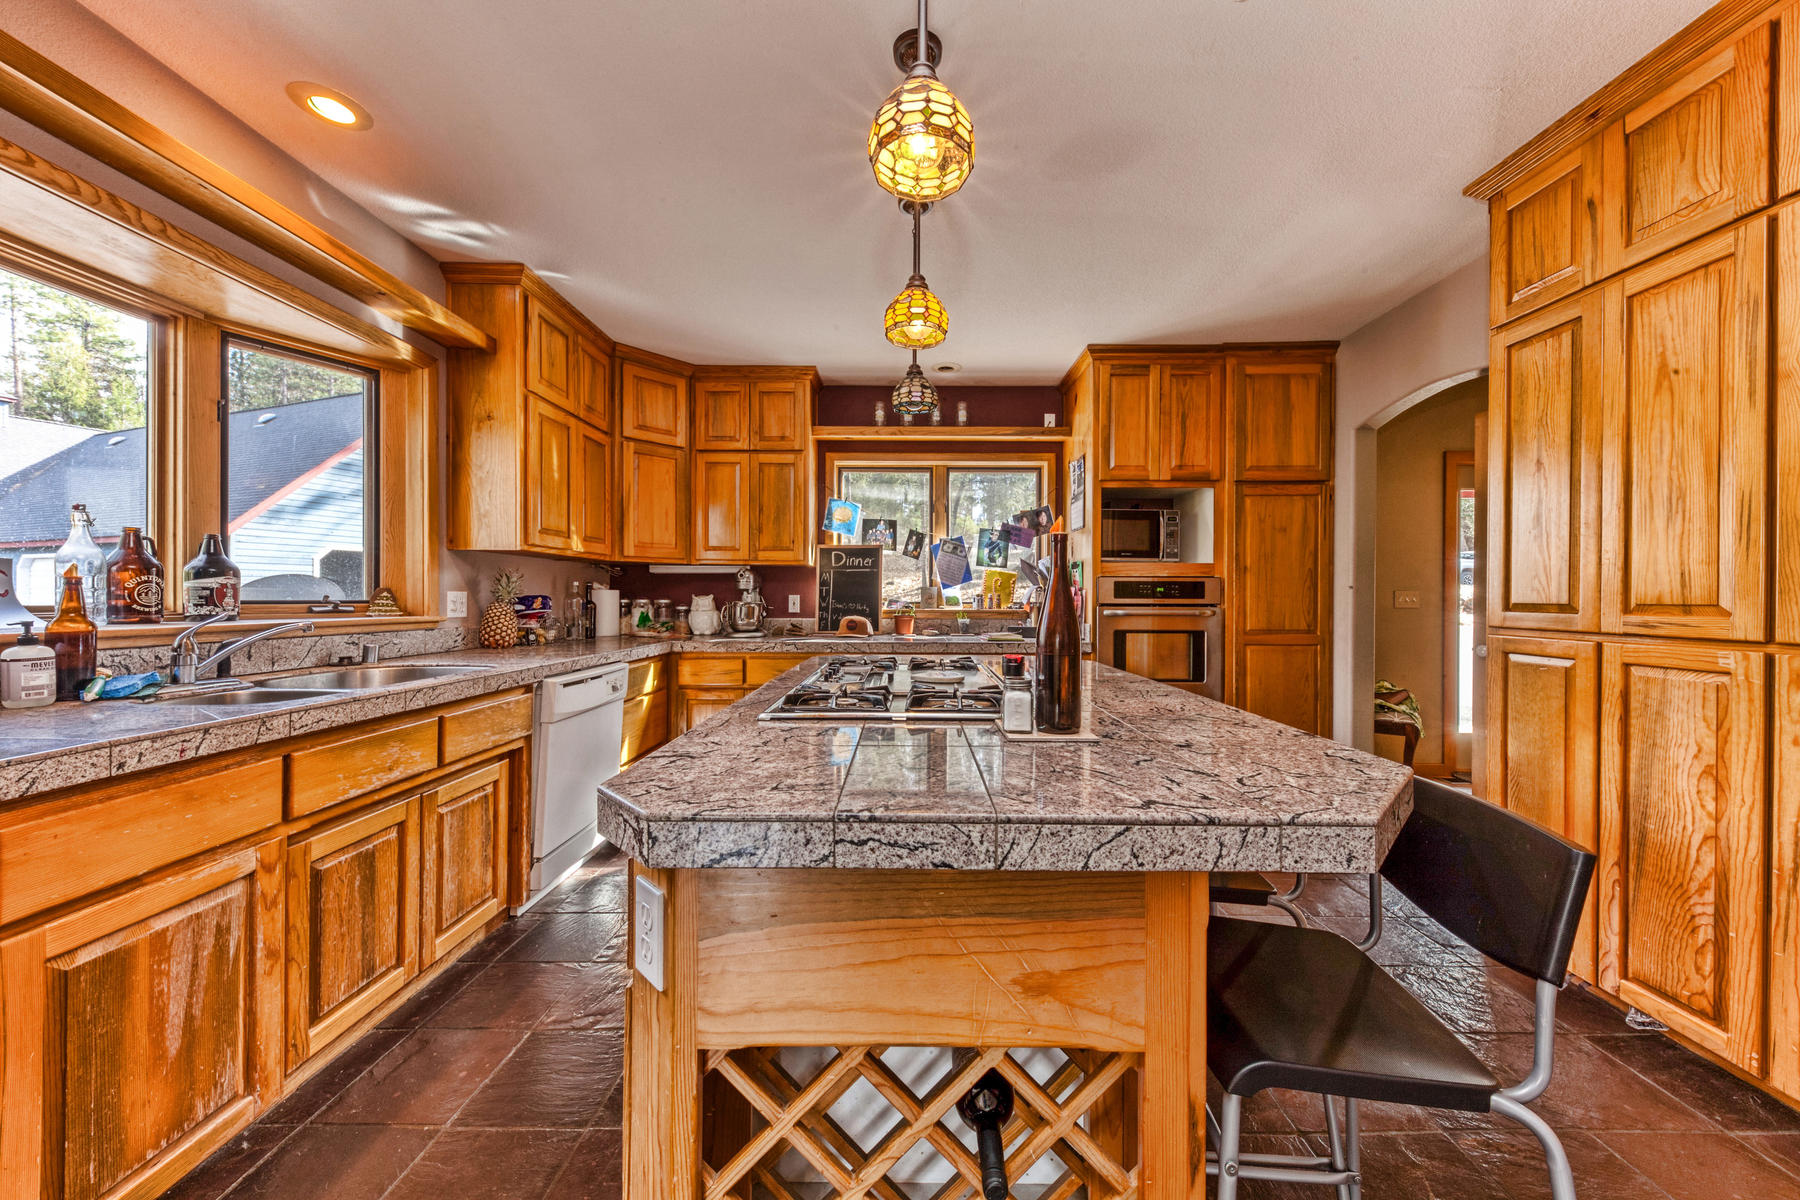 Additional photo for property listing at 2425 Ridgerun Road, Quincy, CA 95971 2425 Ridgerun Road Quincy, 加利福尼亚州 95971 美国